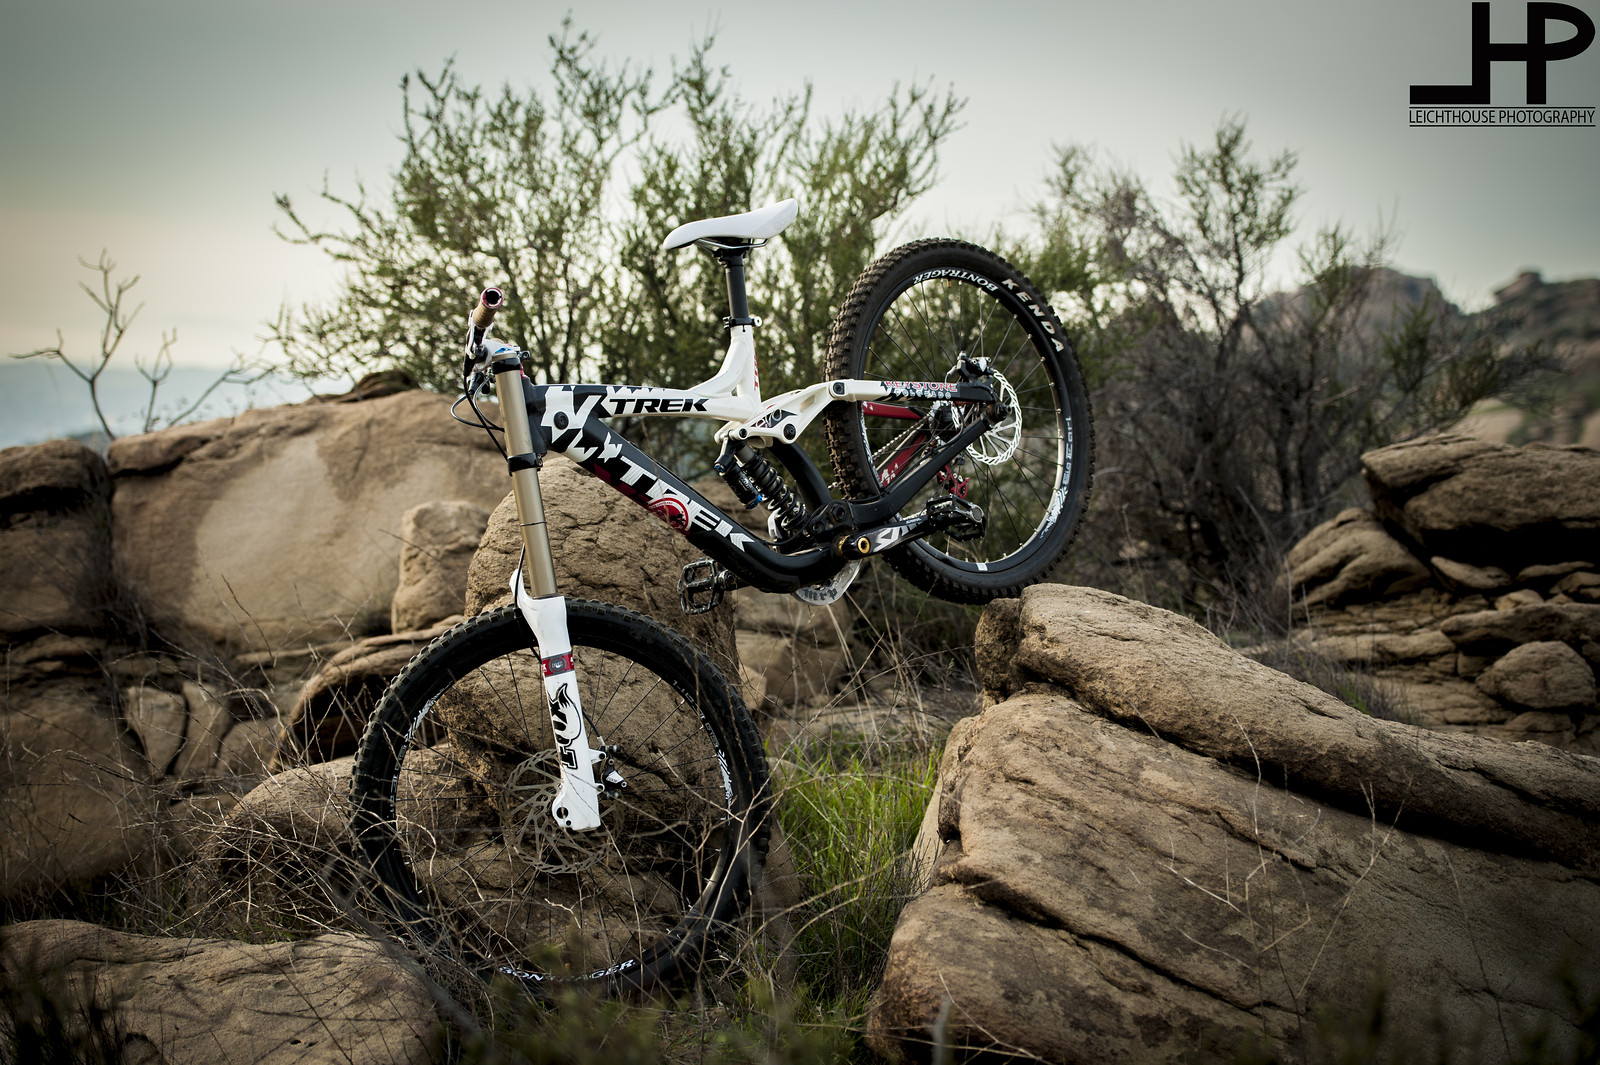 trek session 88 - LeichtHouse photography - Mountain Biking Pictures - Vital MTB